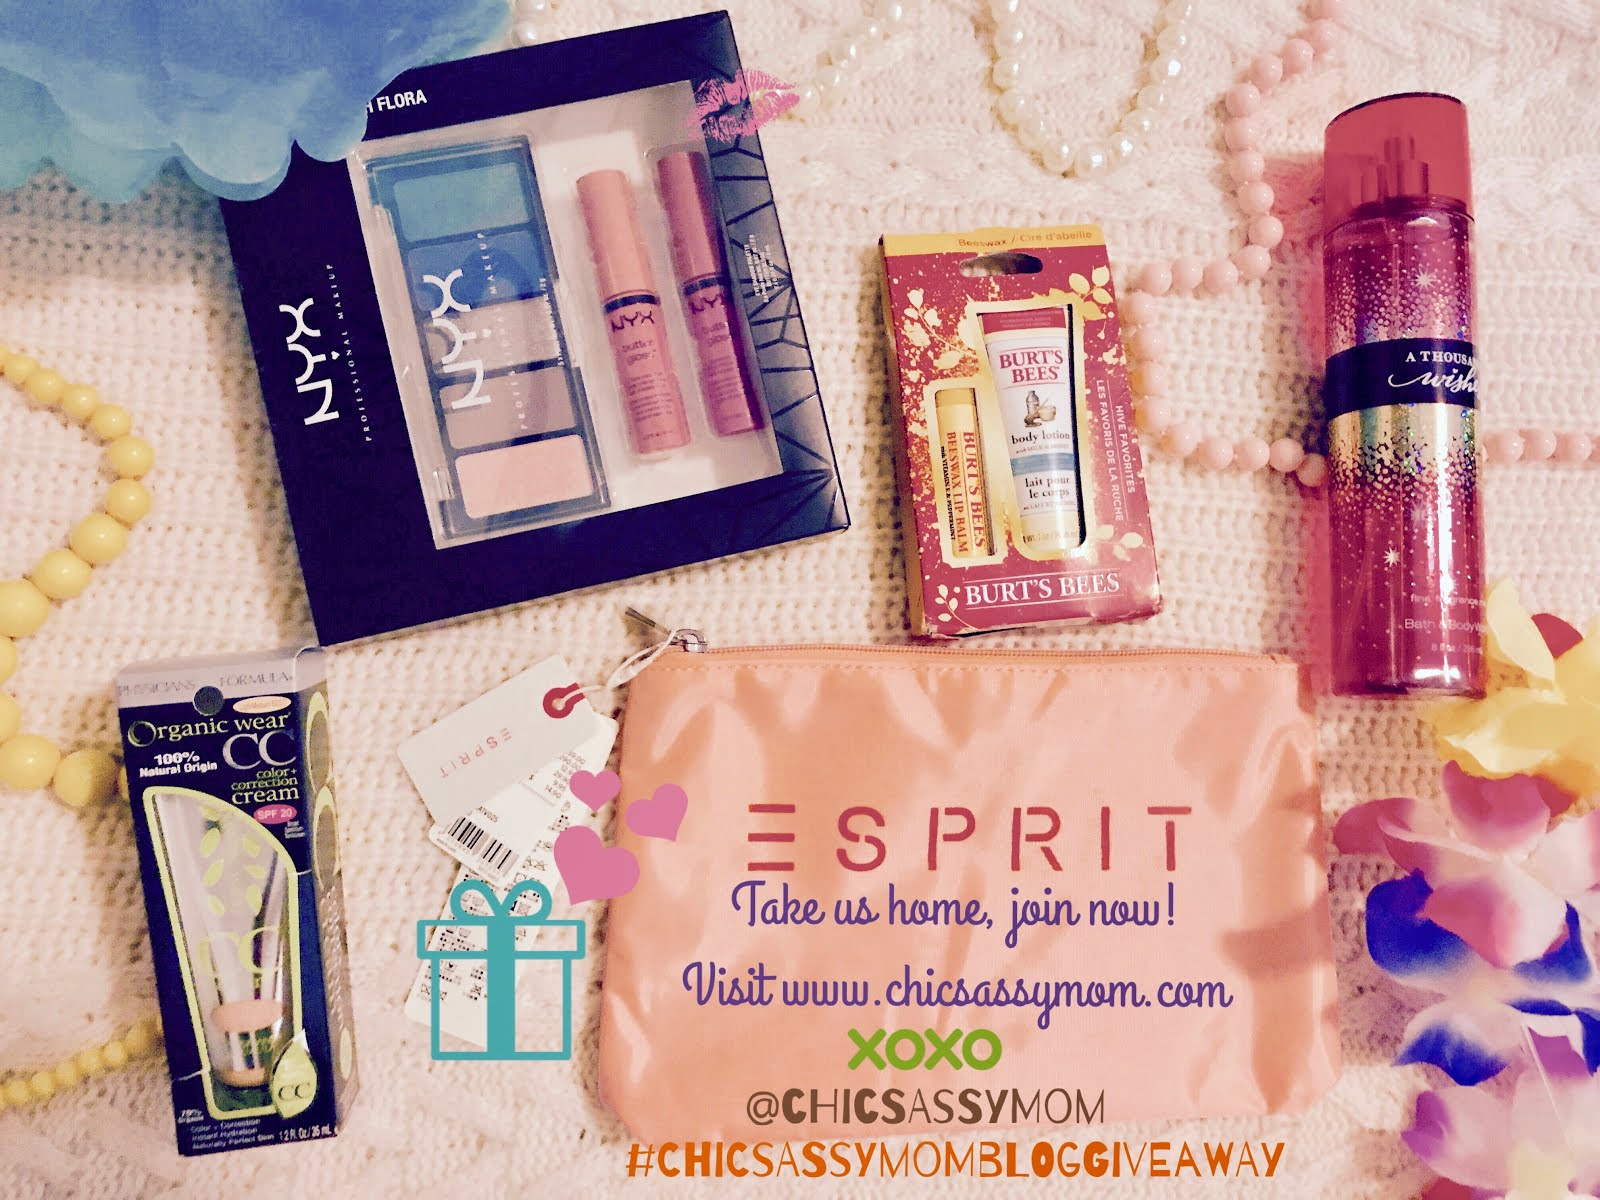 Join now! #ChicSassyMomBlogGiveaway